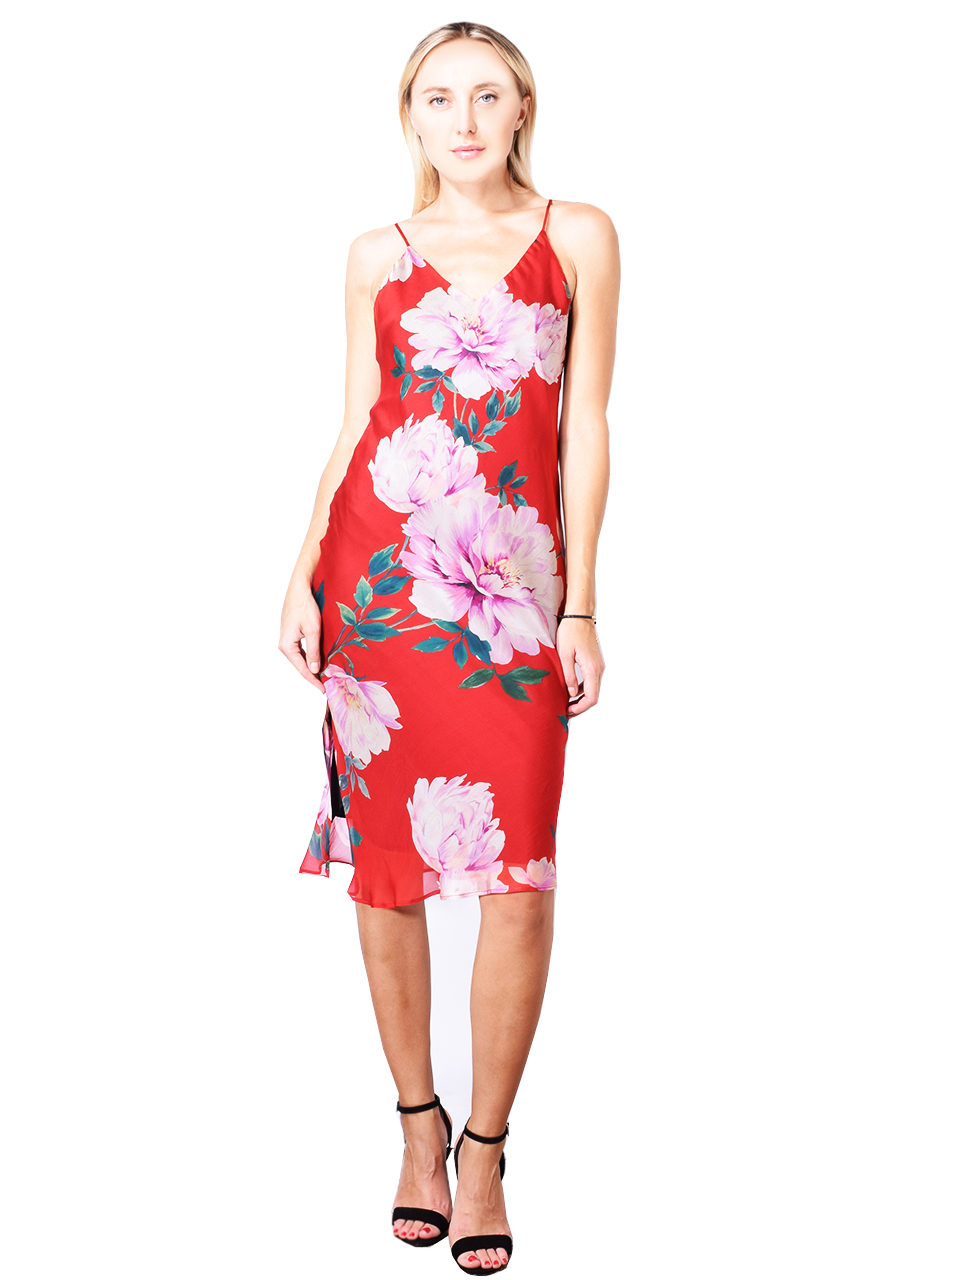 X1https://cdn11.bigcommerce.com/s-3wu6n/products/32276/images/104651/Floral_red_Back_view__51288.1568416372.1280.1280.jpg?c=X2